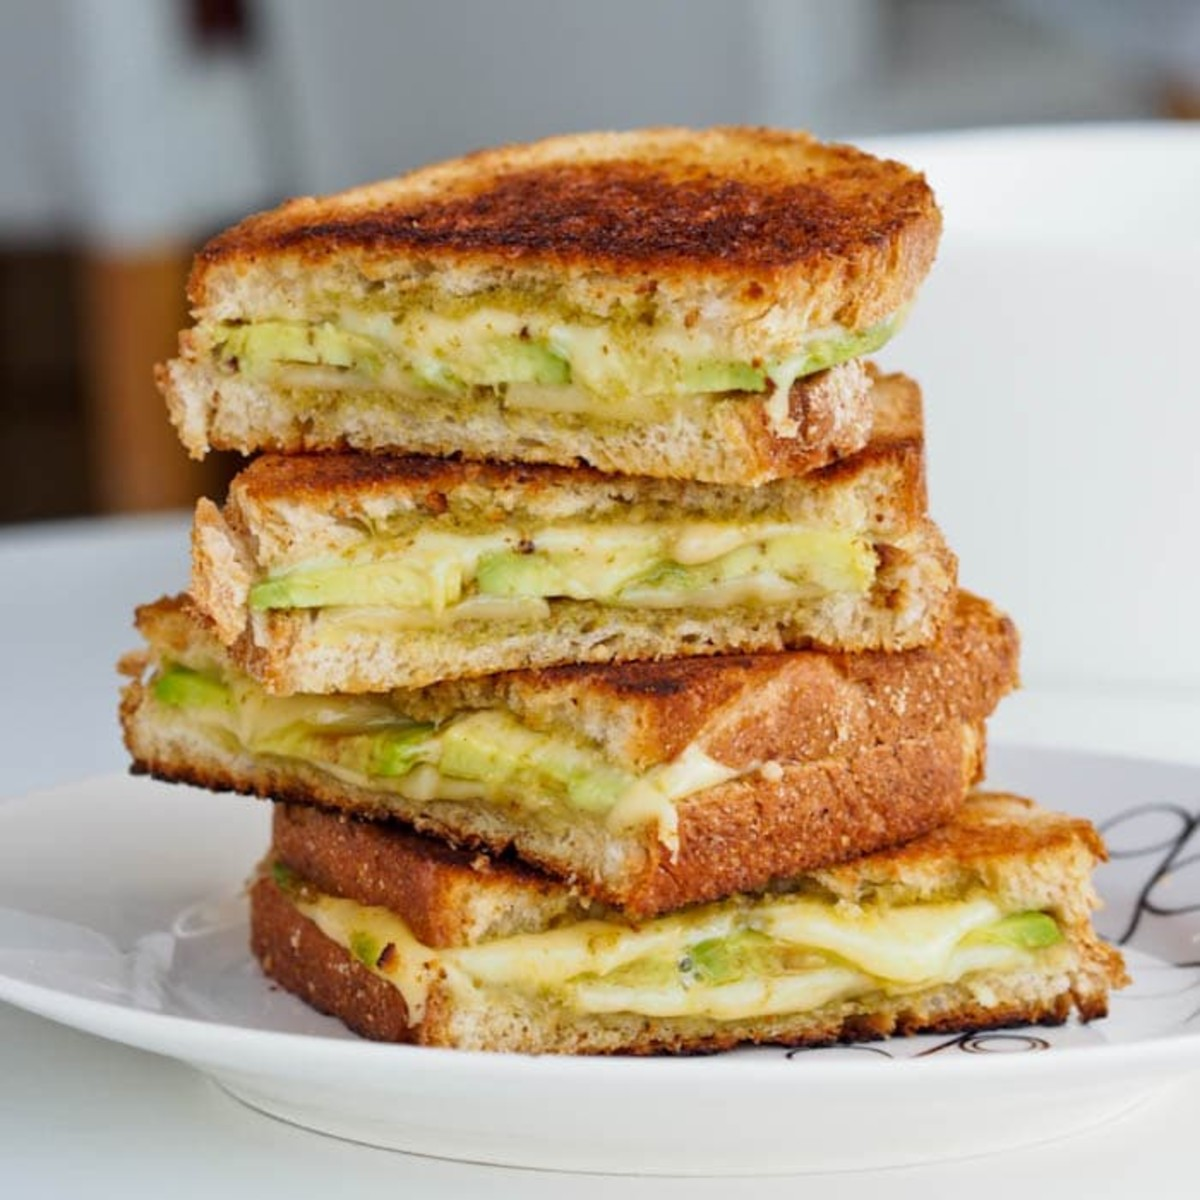 Chicken, Pepper Jack, and Avocado